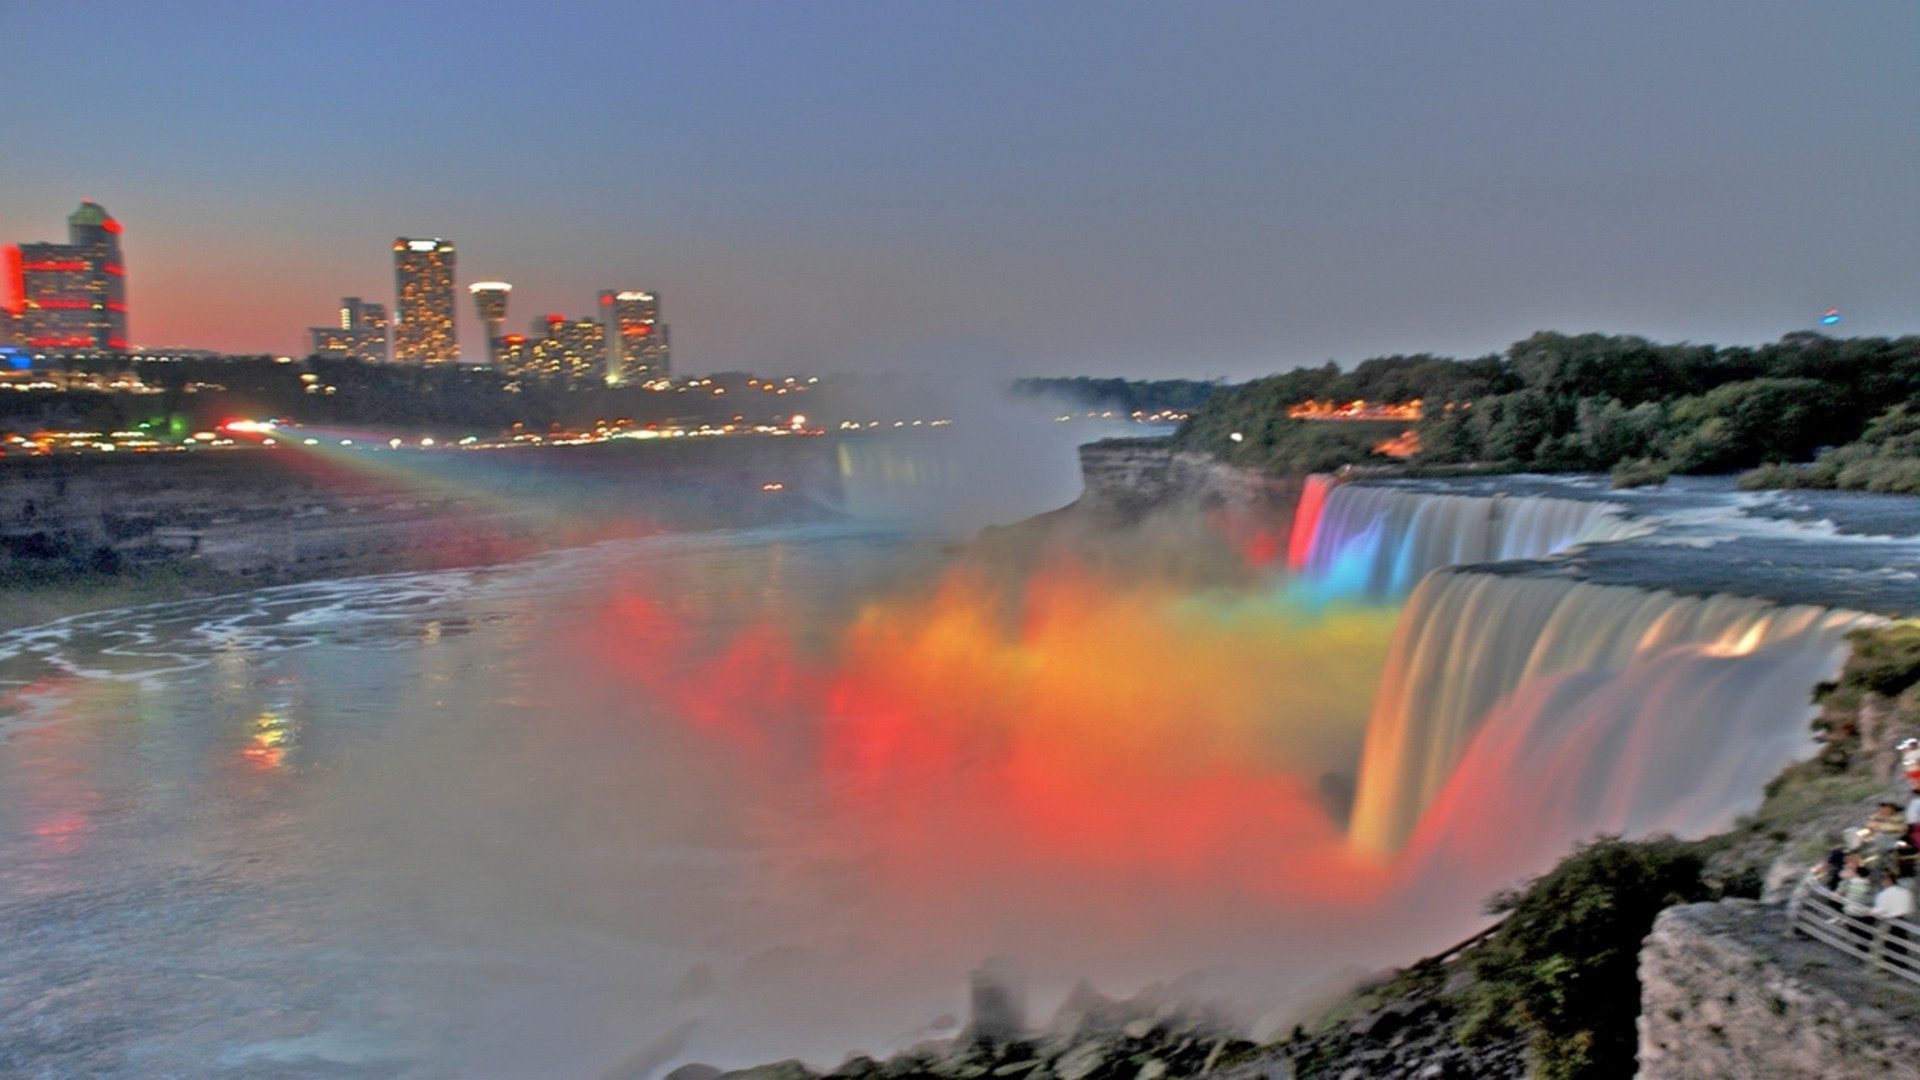 Niagara falls in color light